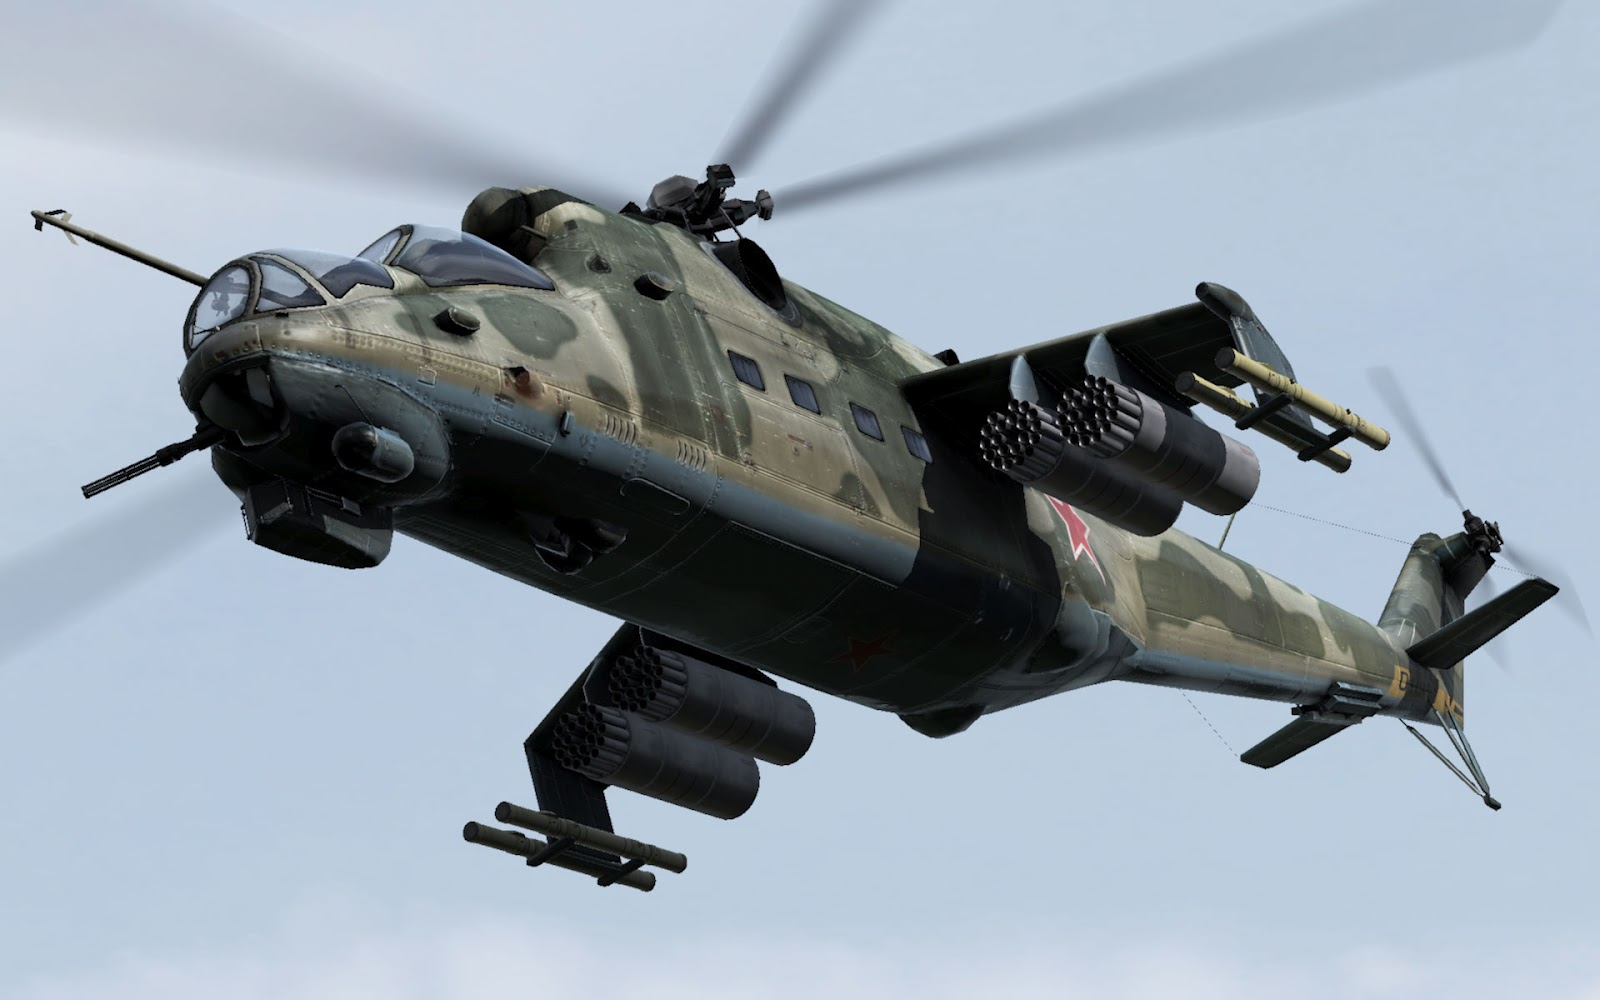 who designed the apache helicopter with Top 41 Most Incredible And Amazing on Attack Multimission Helicopters together with Best Helicopters In World further File Bristish Army Air Corps Apache Attack Helicopter MOD 45152575 in addition S 76 also Mil Mi 24 Hind.